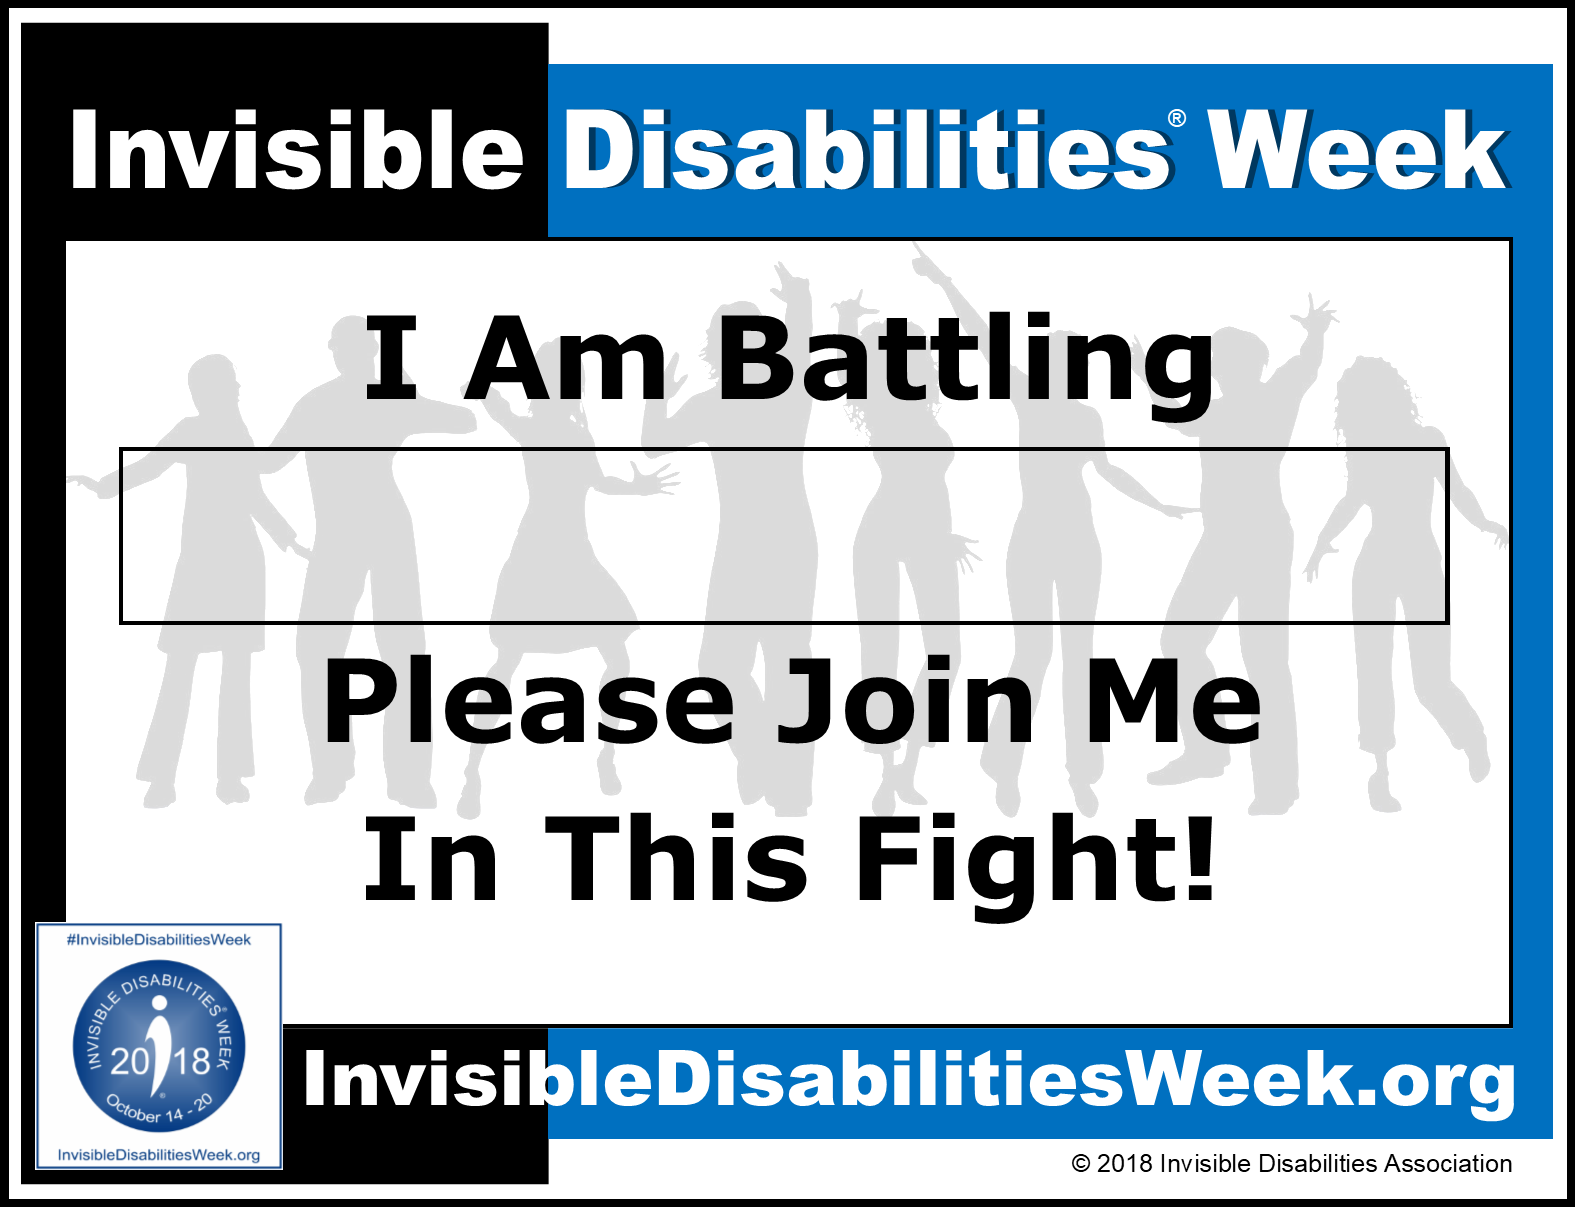 2018 Invisible Disabilities Week Join Me in the Fight Sign